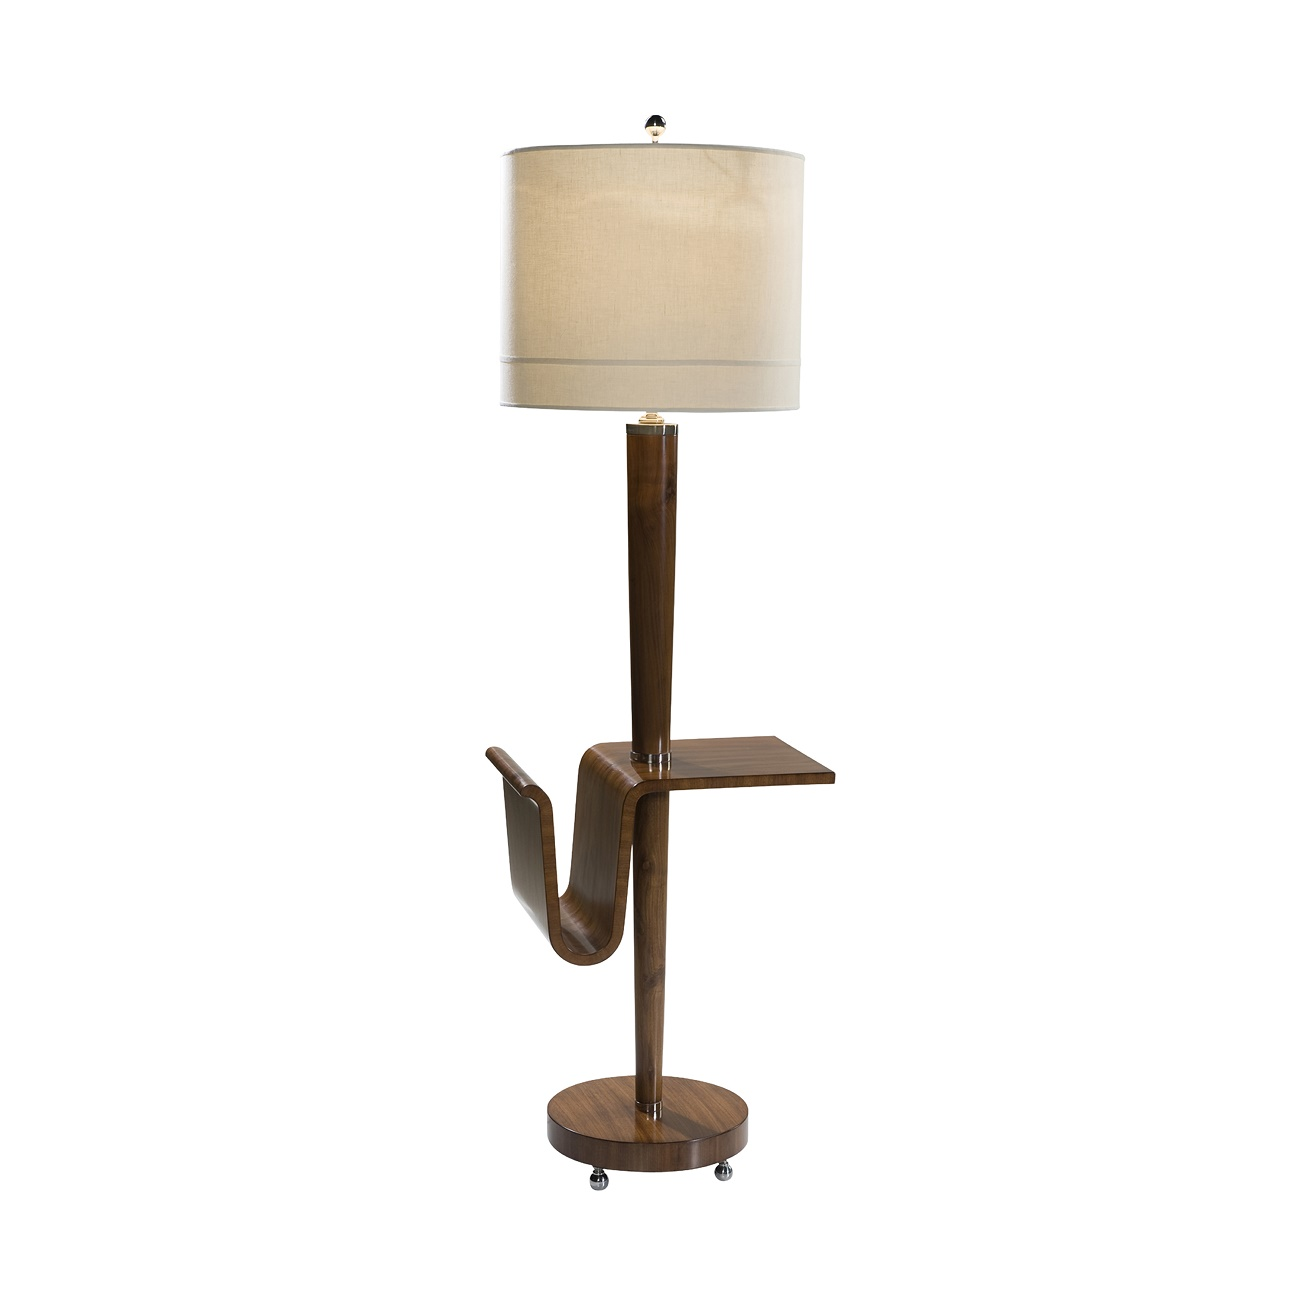 Lumiere Floor Lamp Theodore Alexander Table Lamp Brooklyn,New York - Accentuations Brand